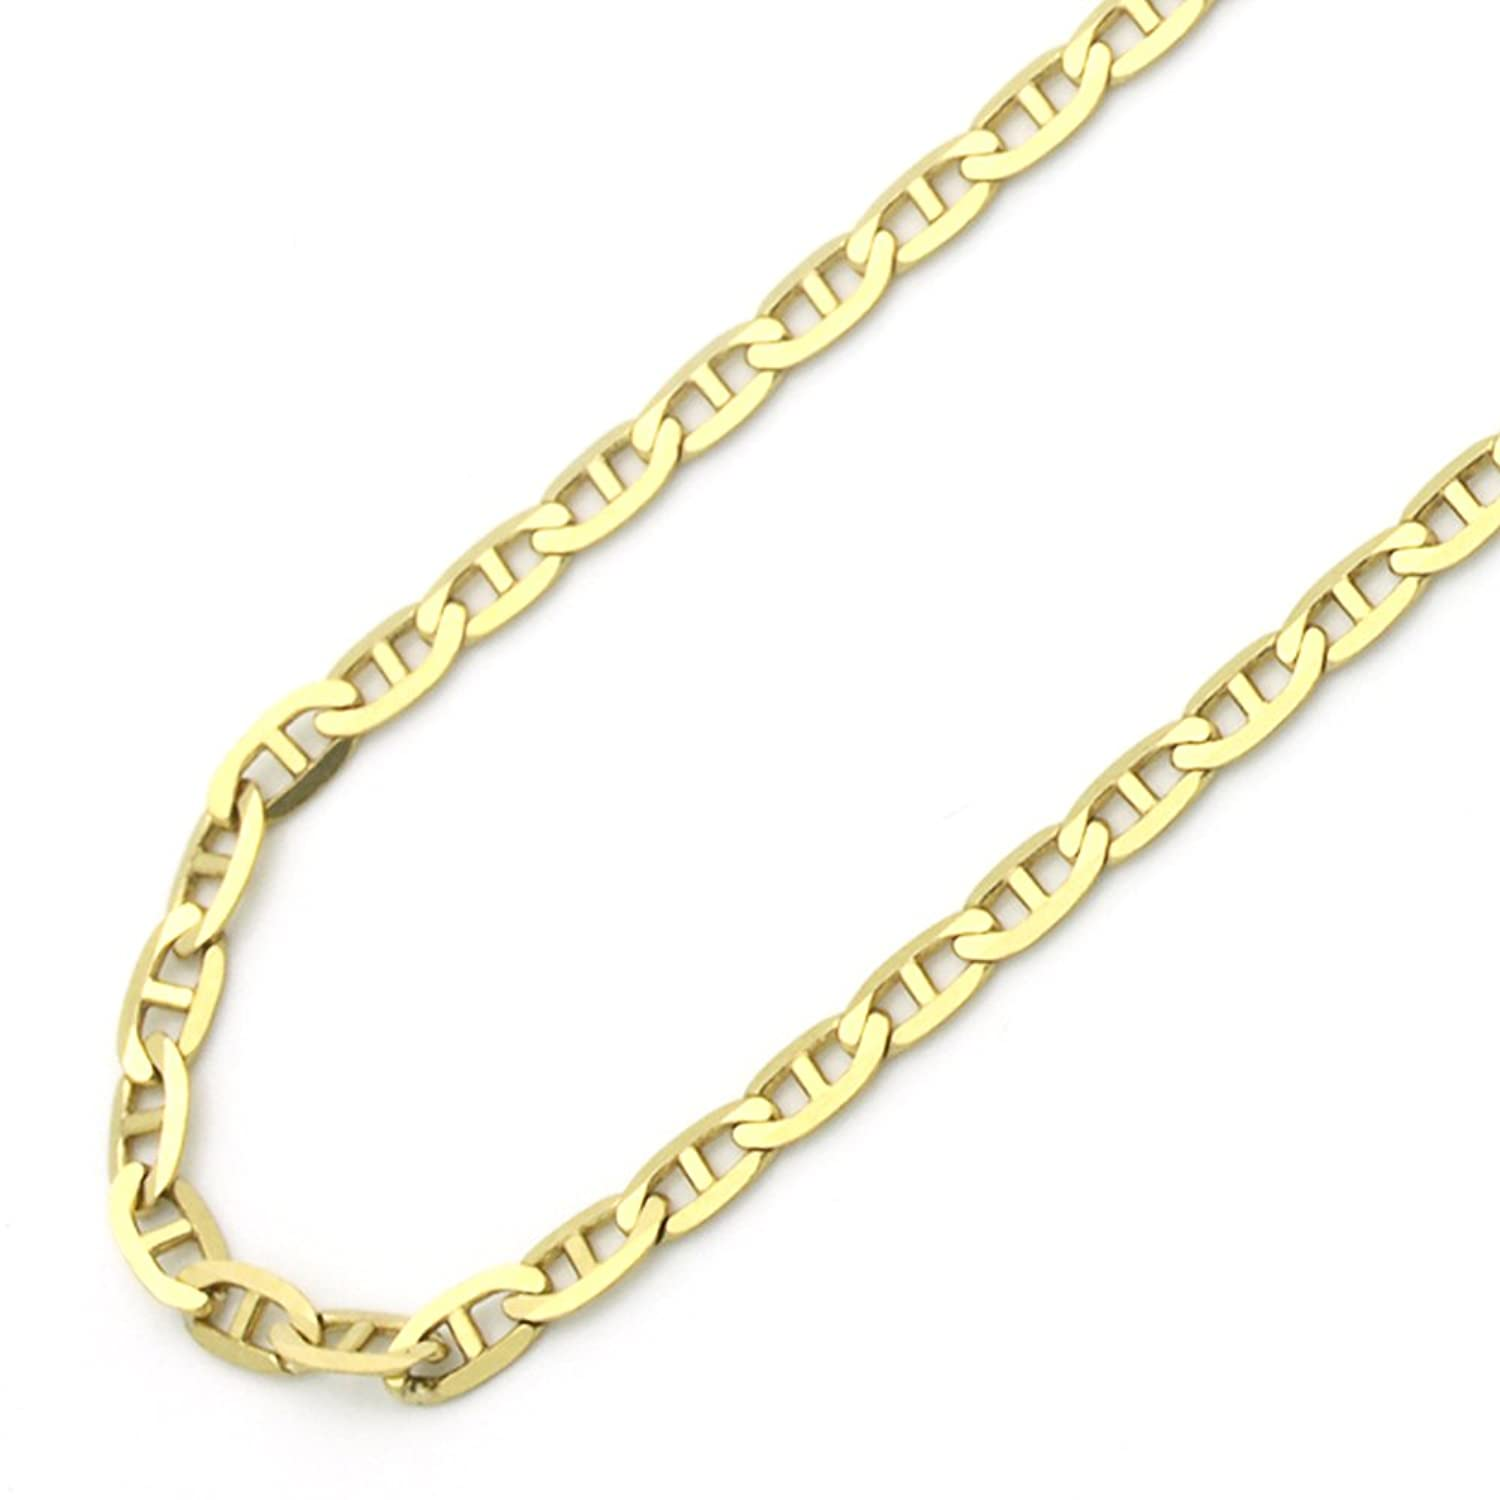 chy gold jewelry g very thin box white italian gauge bling chain necklace